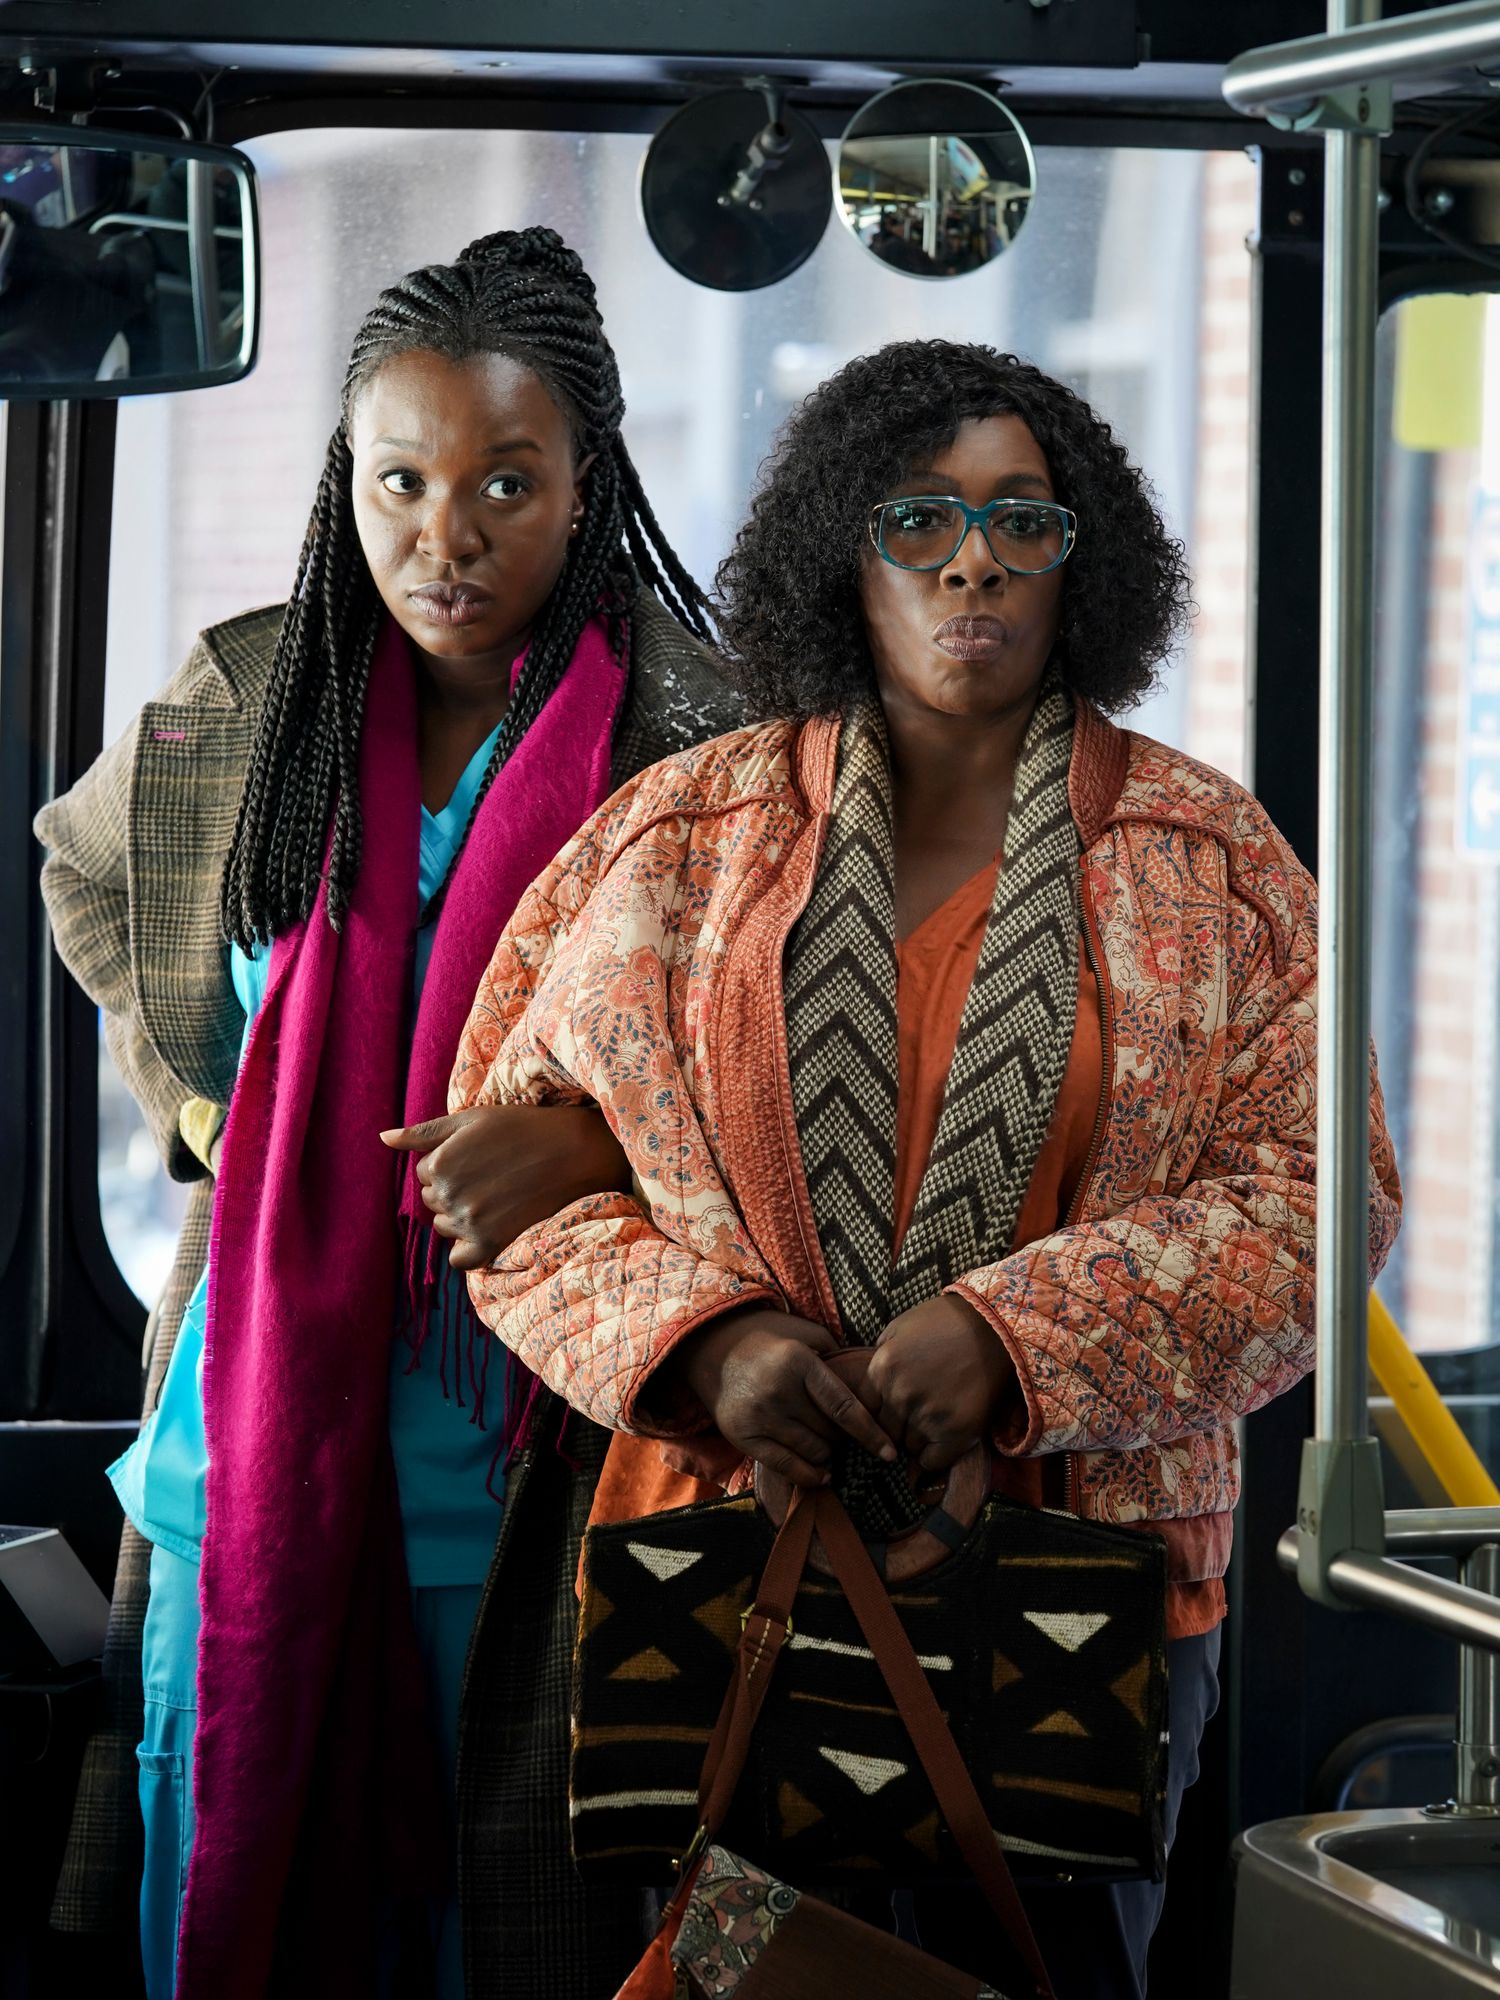 Abishola and Kemi boarding a bus